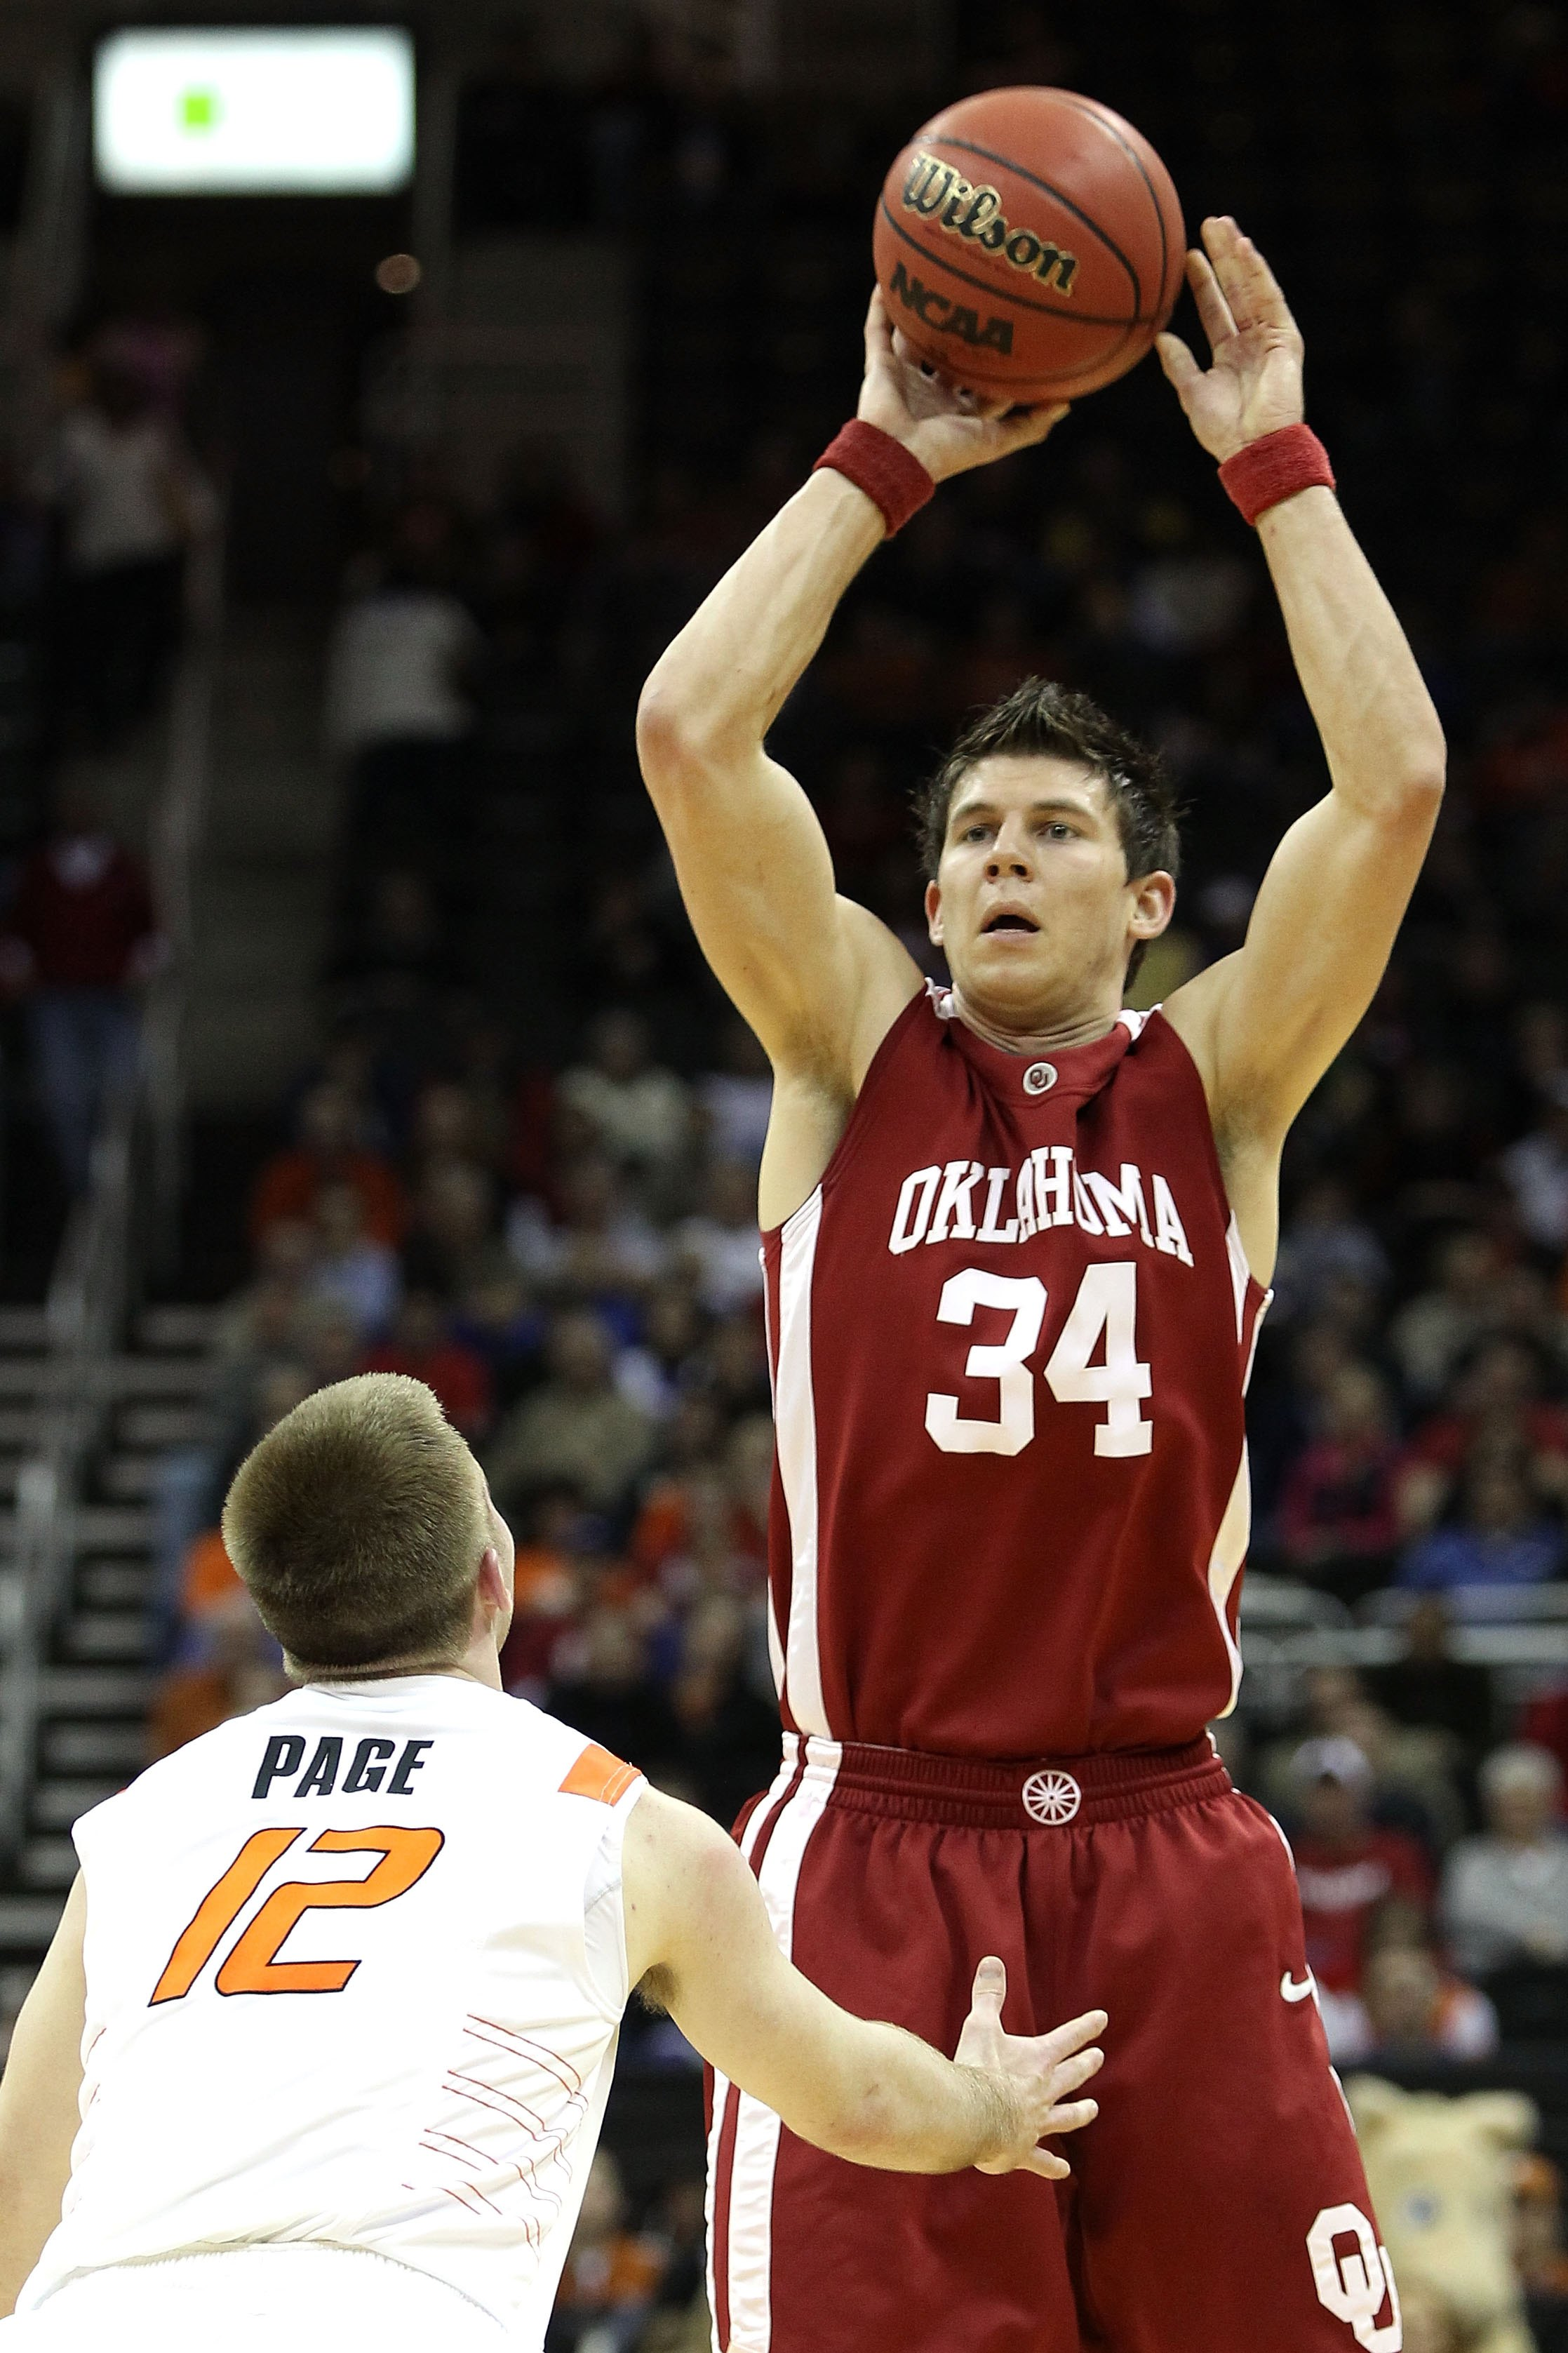 KANSAS CITY, MO - MARCH 10:  Cade Davis #34 of the Oklahoma Sooners moves the ball as he is covered by Keiton Page #12 of the Oklahoma State Cowboys during the first round game of the 2010 Phillips 66 Big 12 Men's Basketball Tournament at the Sprint Cente